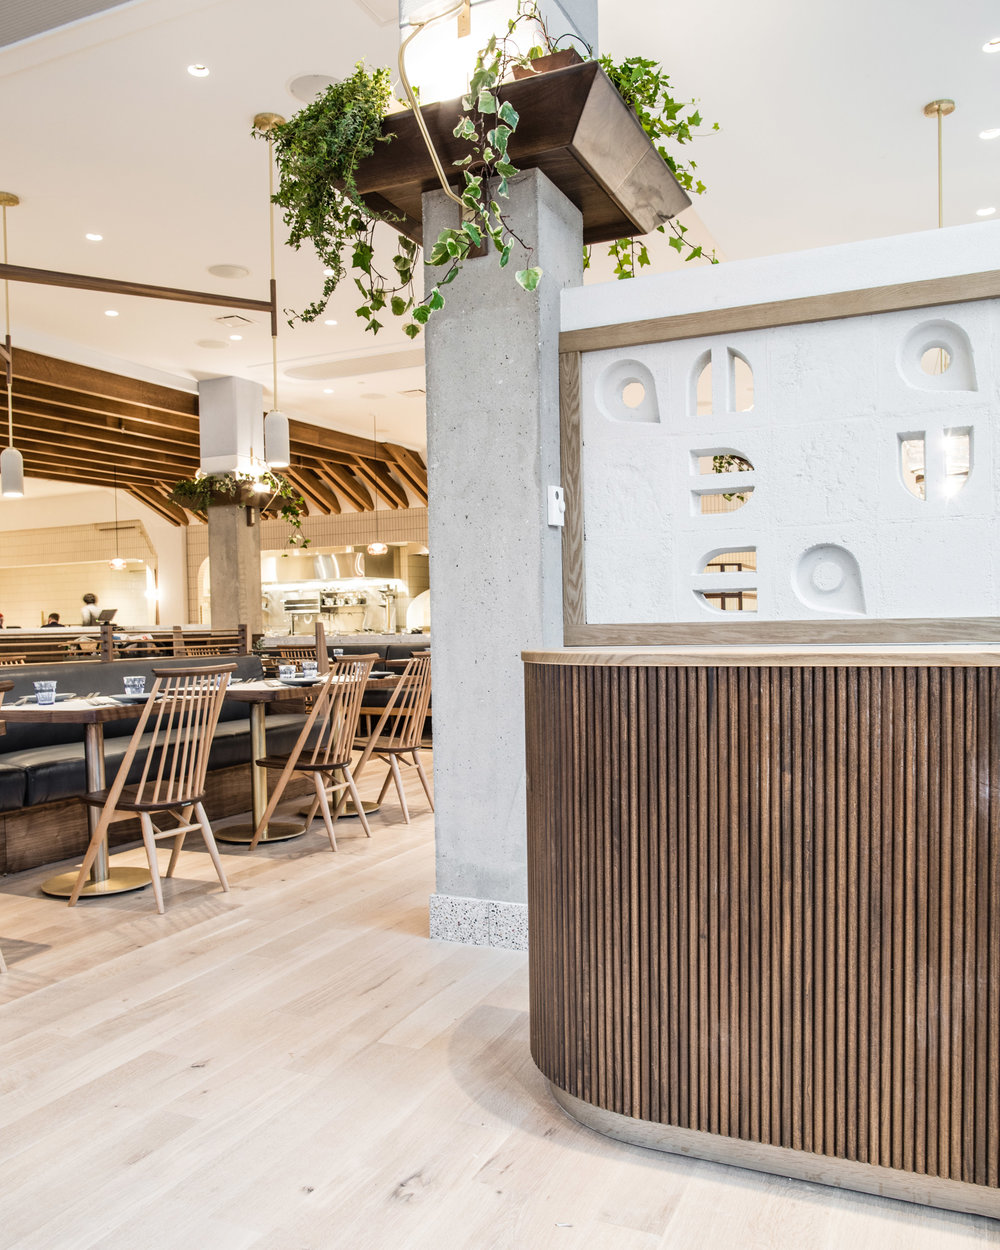 pacific-standard-time-parts-and-labor-interiors-restaurants-chicago-illinois-usa_dezeen_2364_col_15.jpg